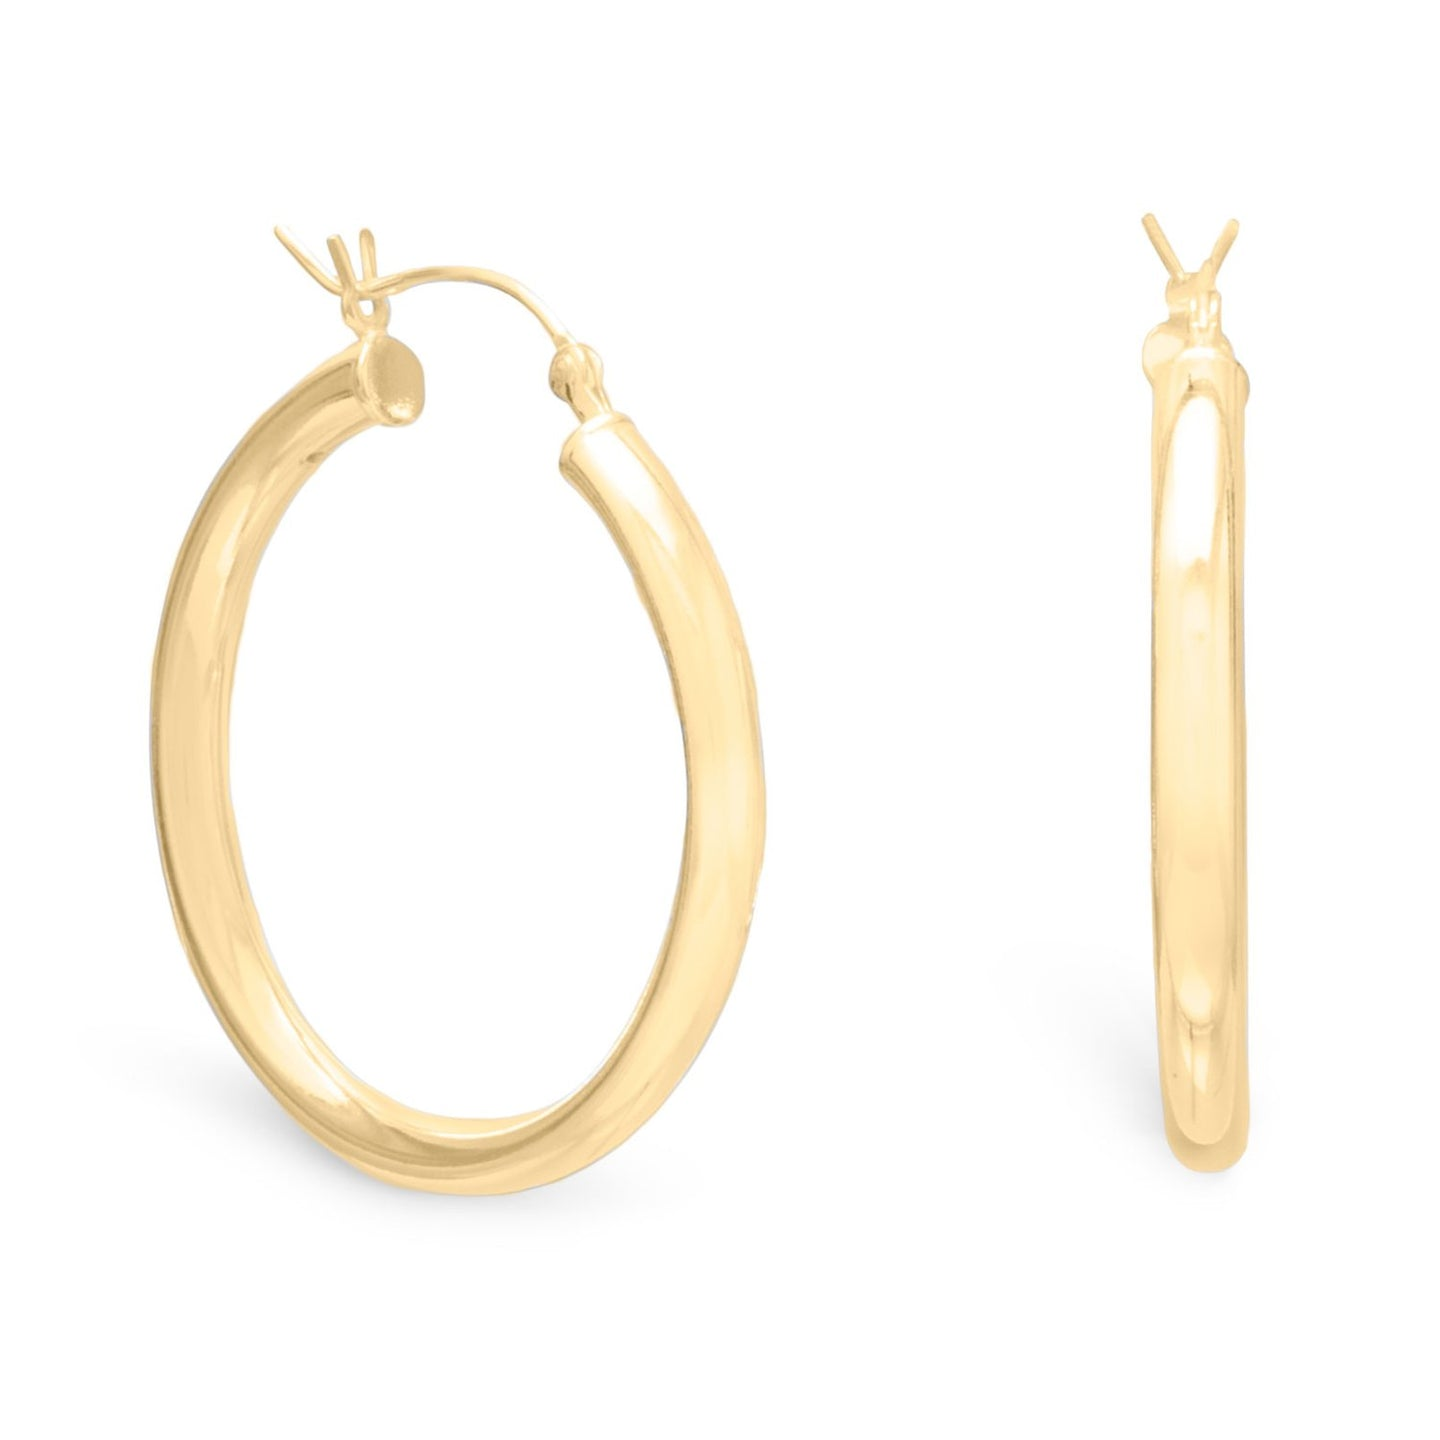 3mm x 35mm Gold Plated Click Hoop at 3 Barn Swallows, $43